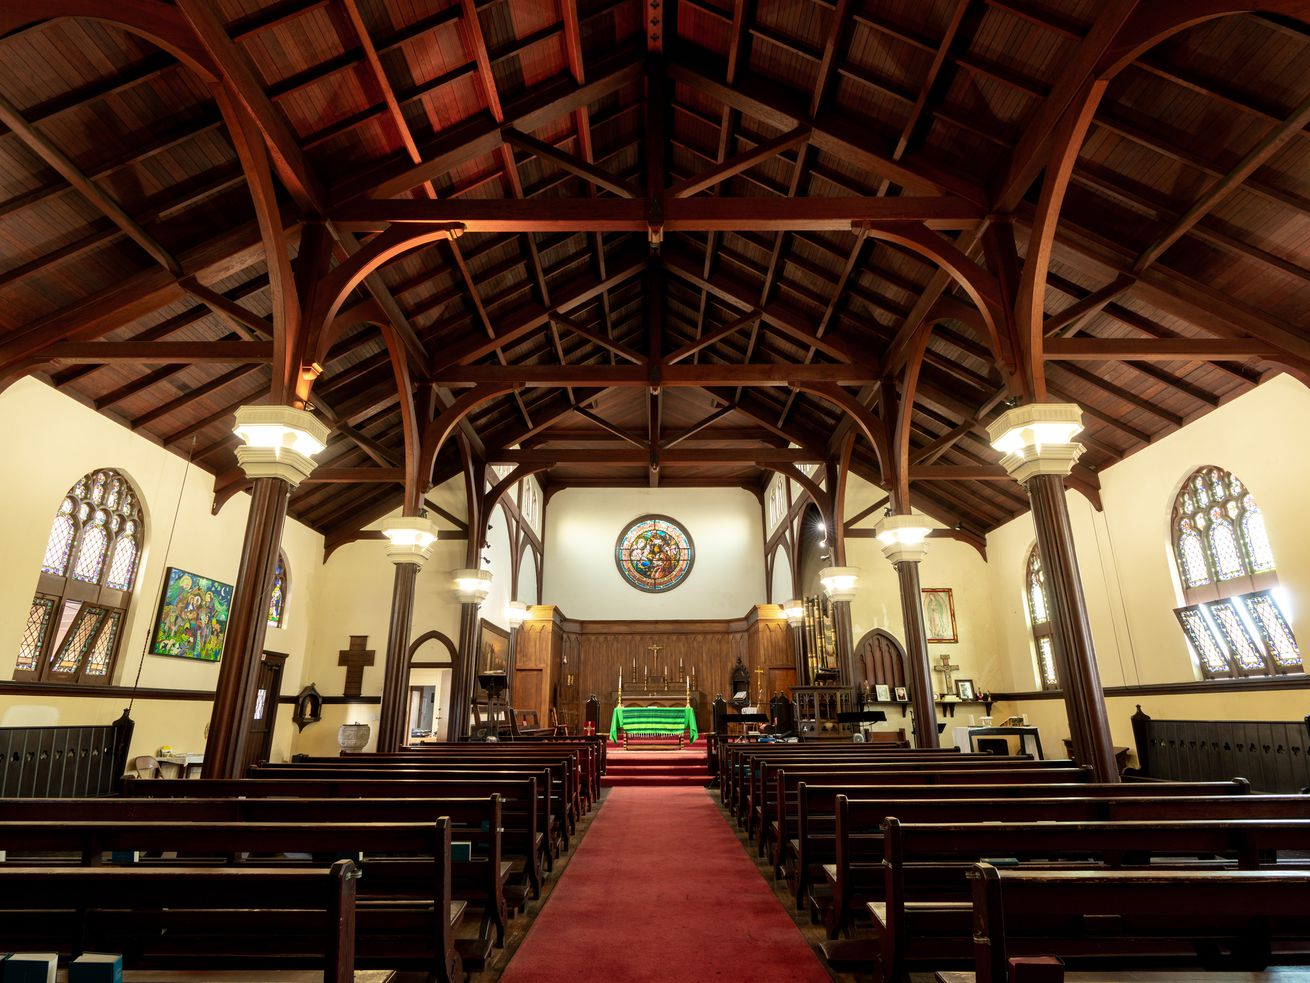 A 2018 photo show's the church's interior.